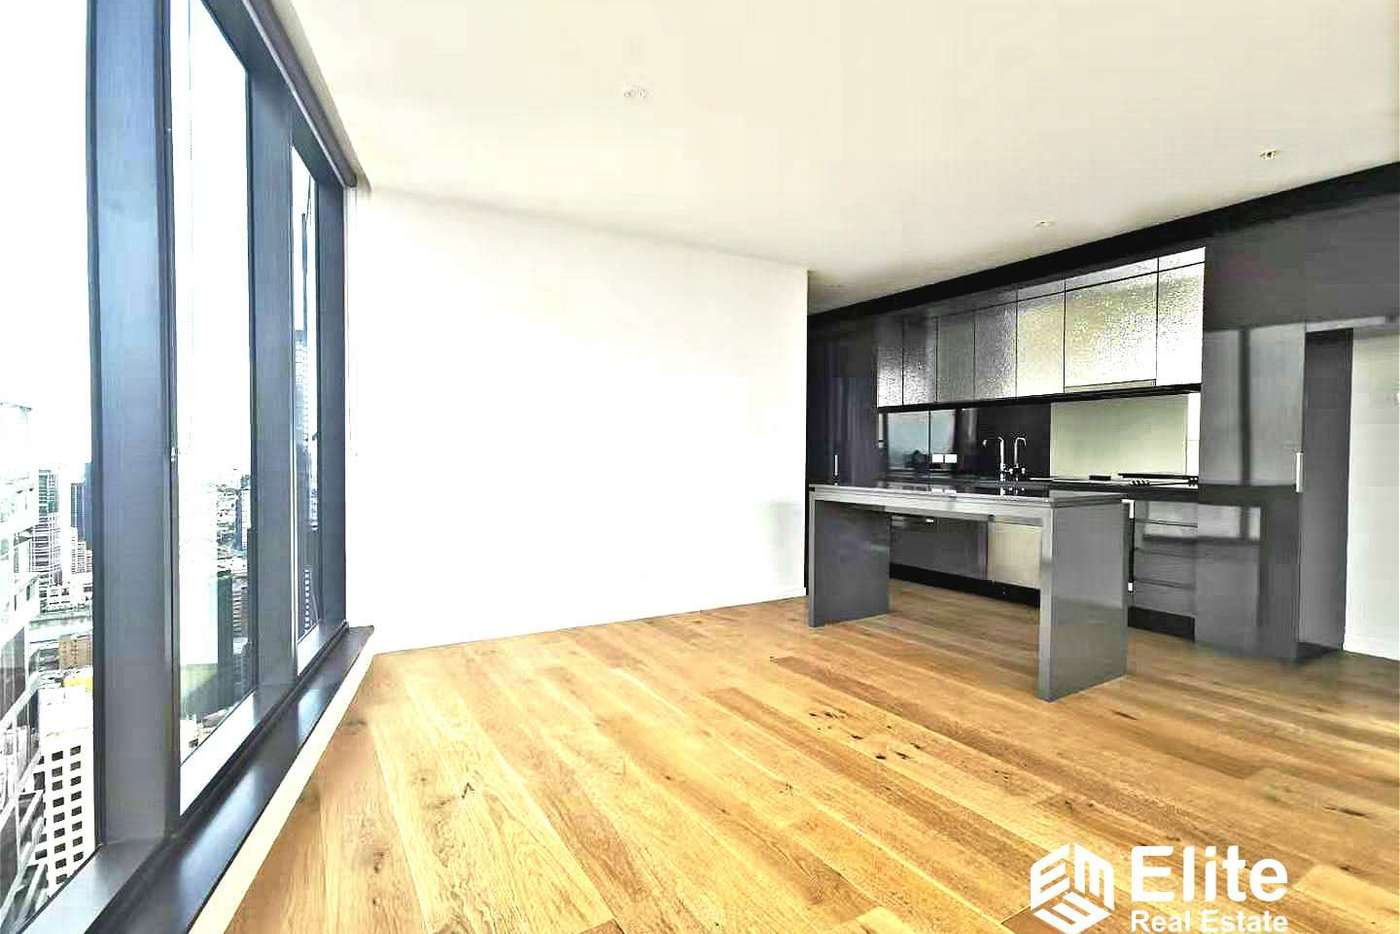 Main view of Homely apartment listing, 5111/33 ROSE LANE, Melbourne VIC 3000